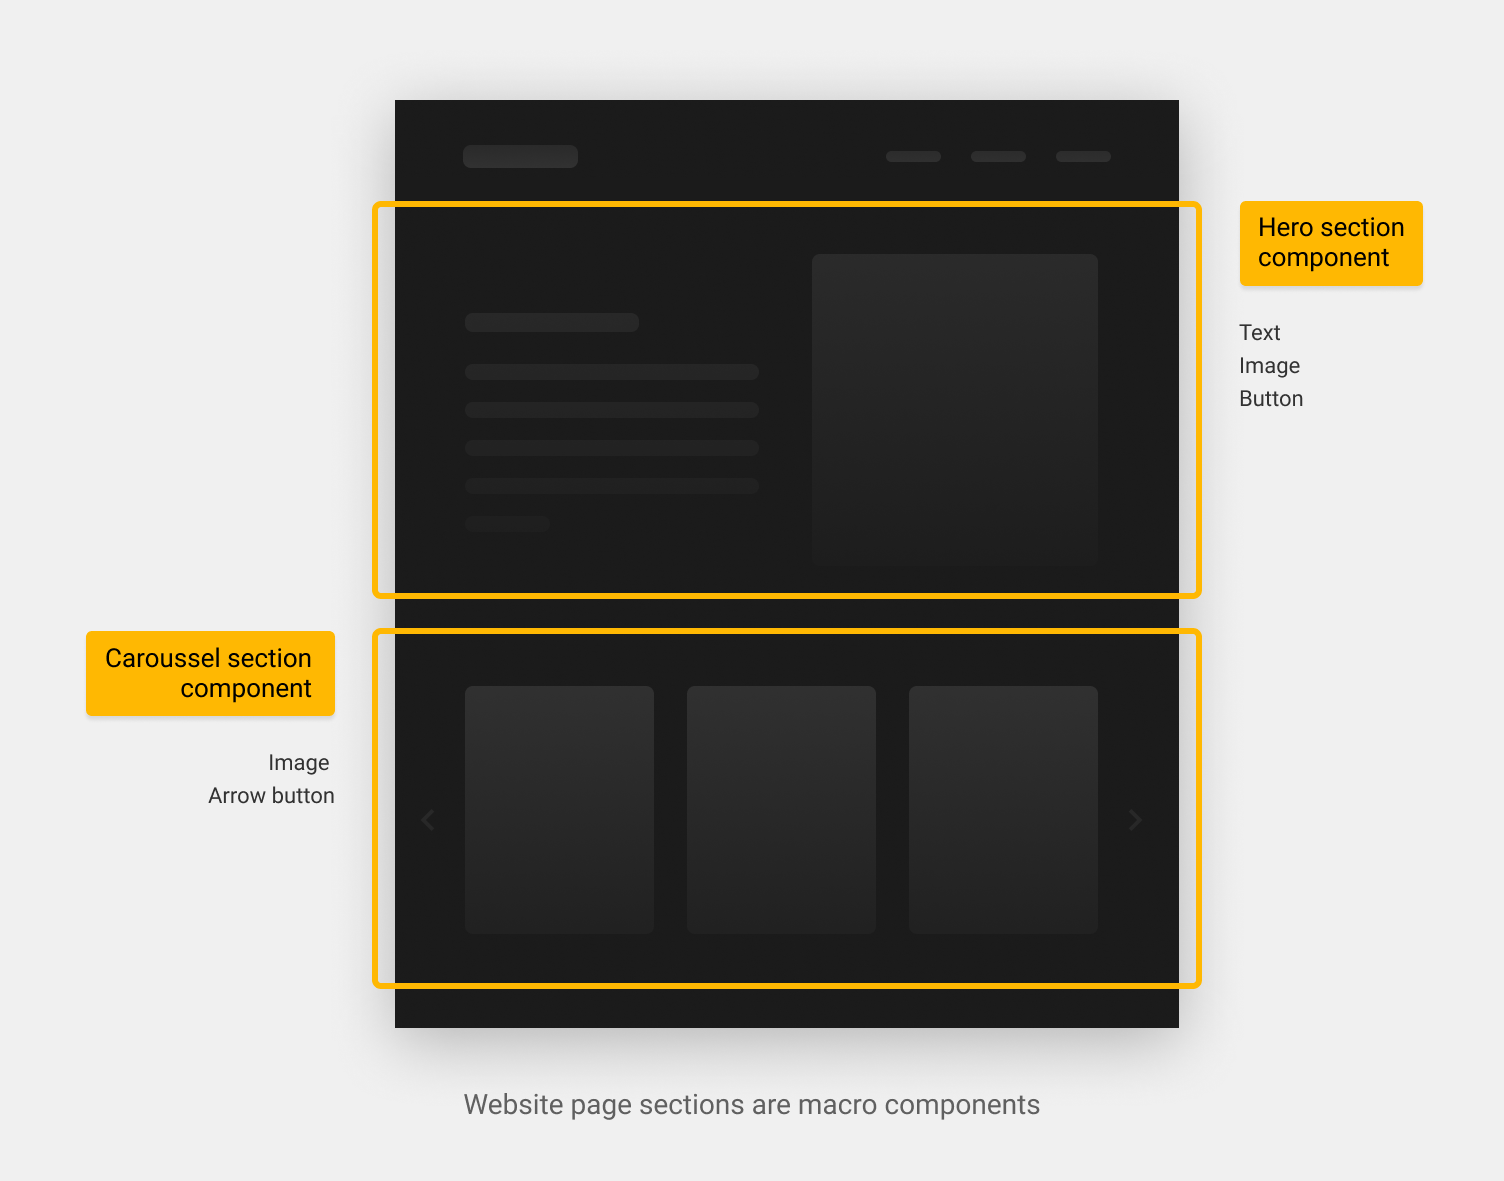 Website page sections are macro components